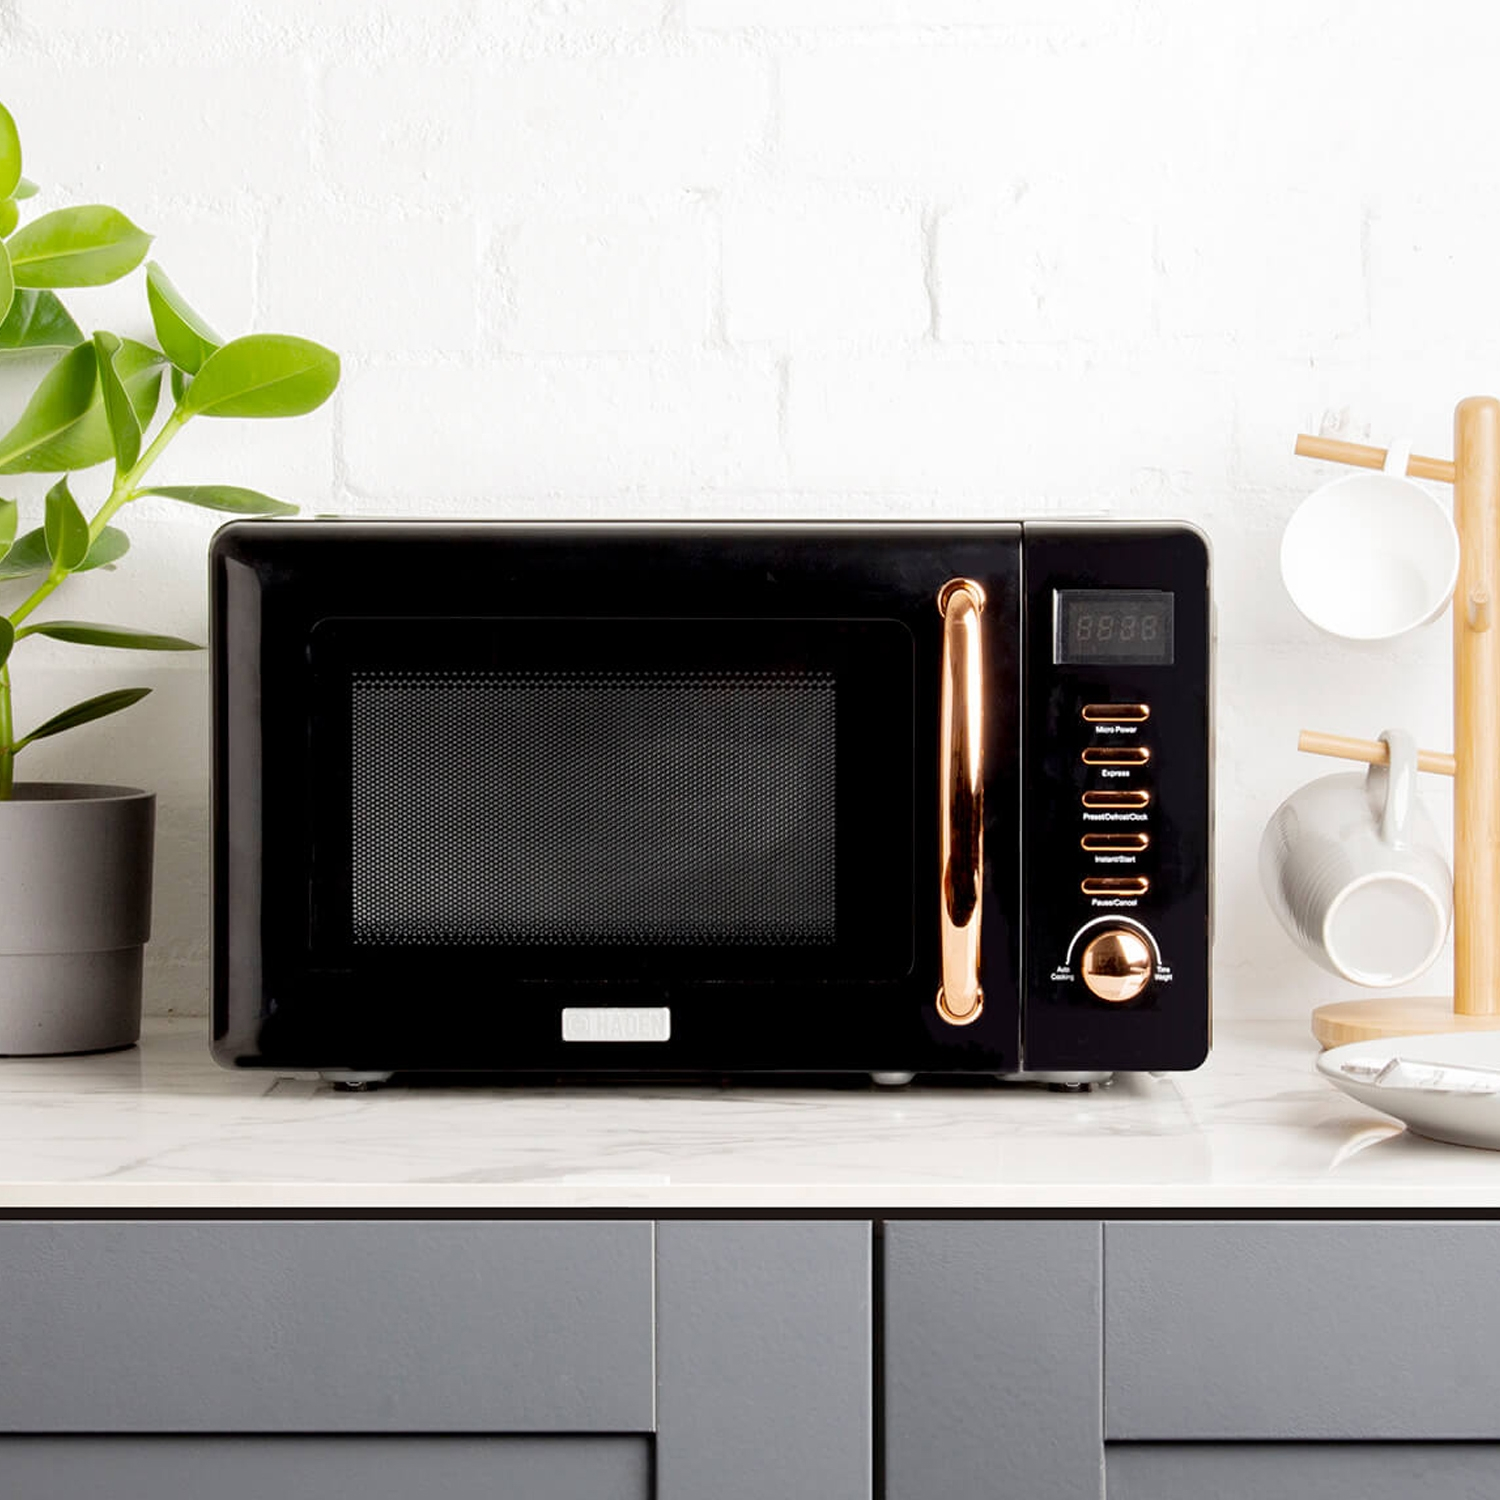 Image of Haden Salcombe Microwave, Black